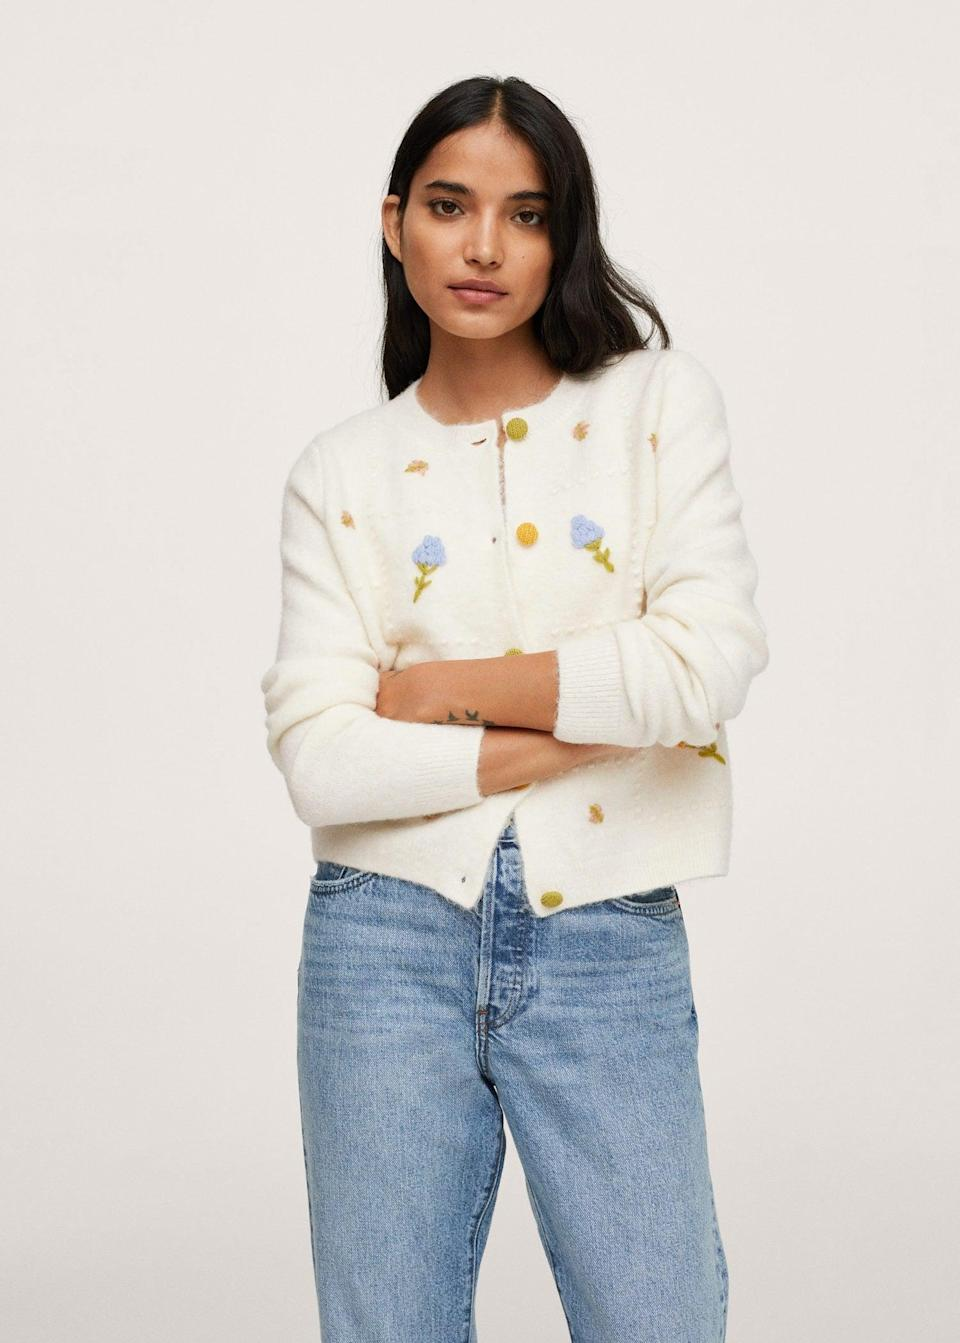 <p>This <span>Mango Flowers Knit Cardigan</span> ($56, originally $80) looks so charming and fun. We bet it feels extremely soft to the touch, and we can totally see it becoming her most-worn top.</p>